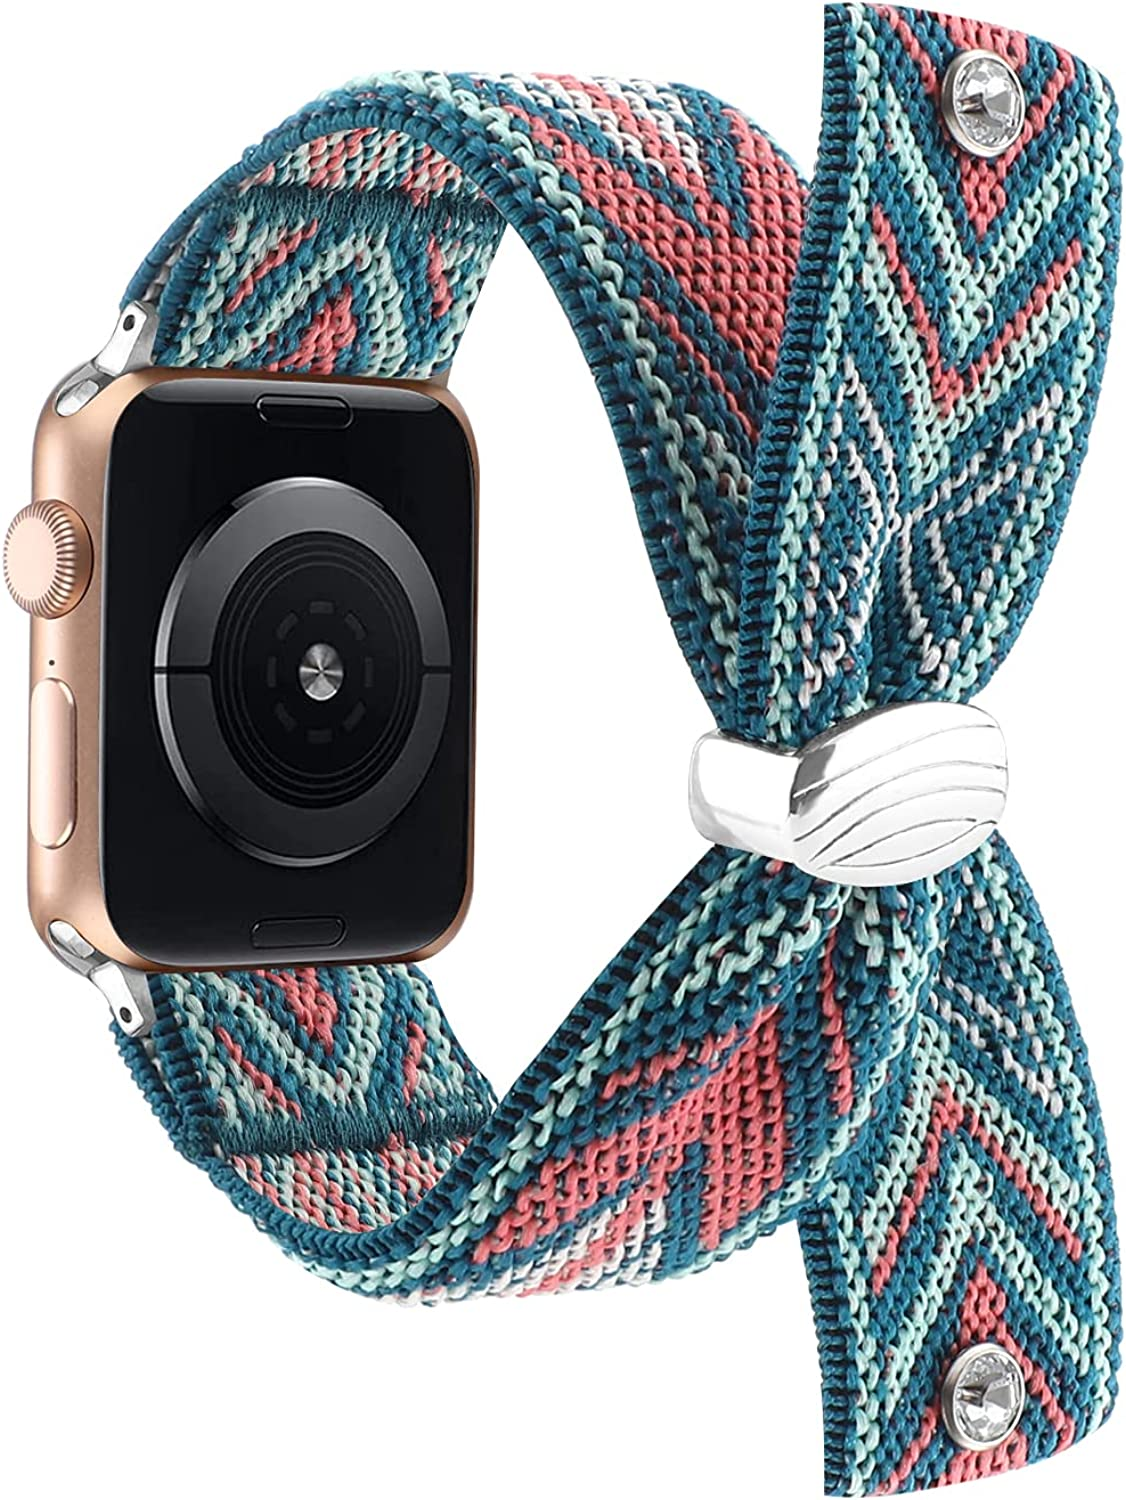 Stretchy Nylon Solo Loop Bands Compatible with Apple Watch 38mm 40mm 42mm 44mm, Women Elastic Adjustable Wristband Compatible with iWatch Series 6/SE/5/4/3/2/1